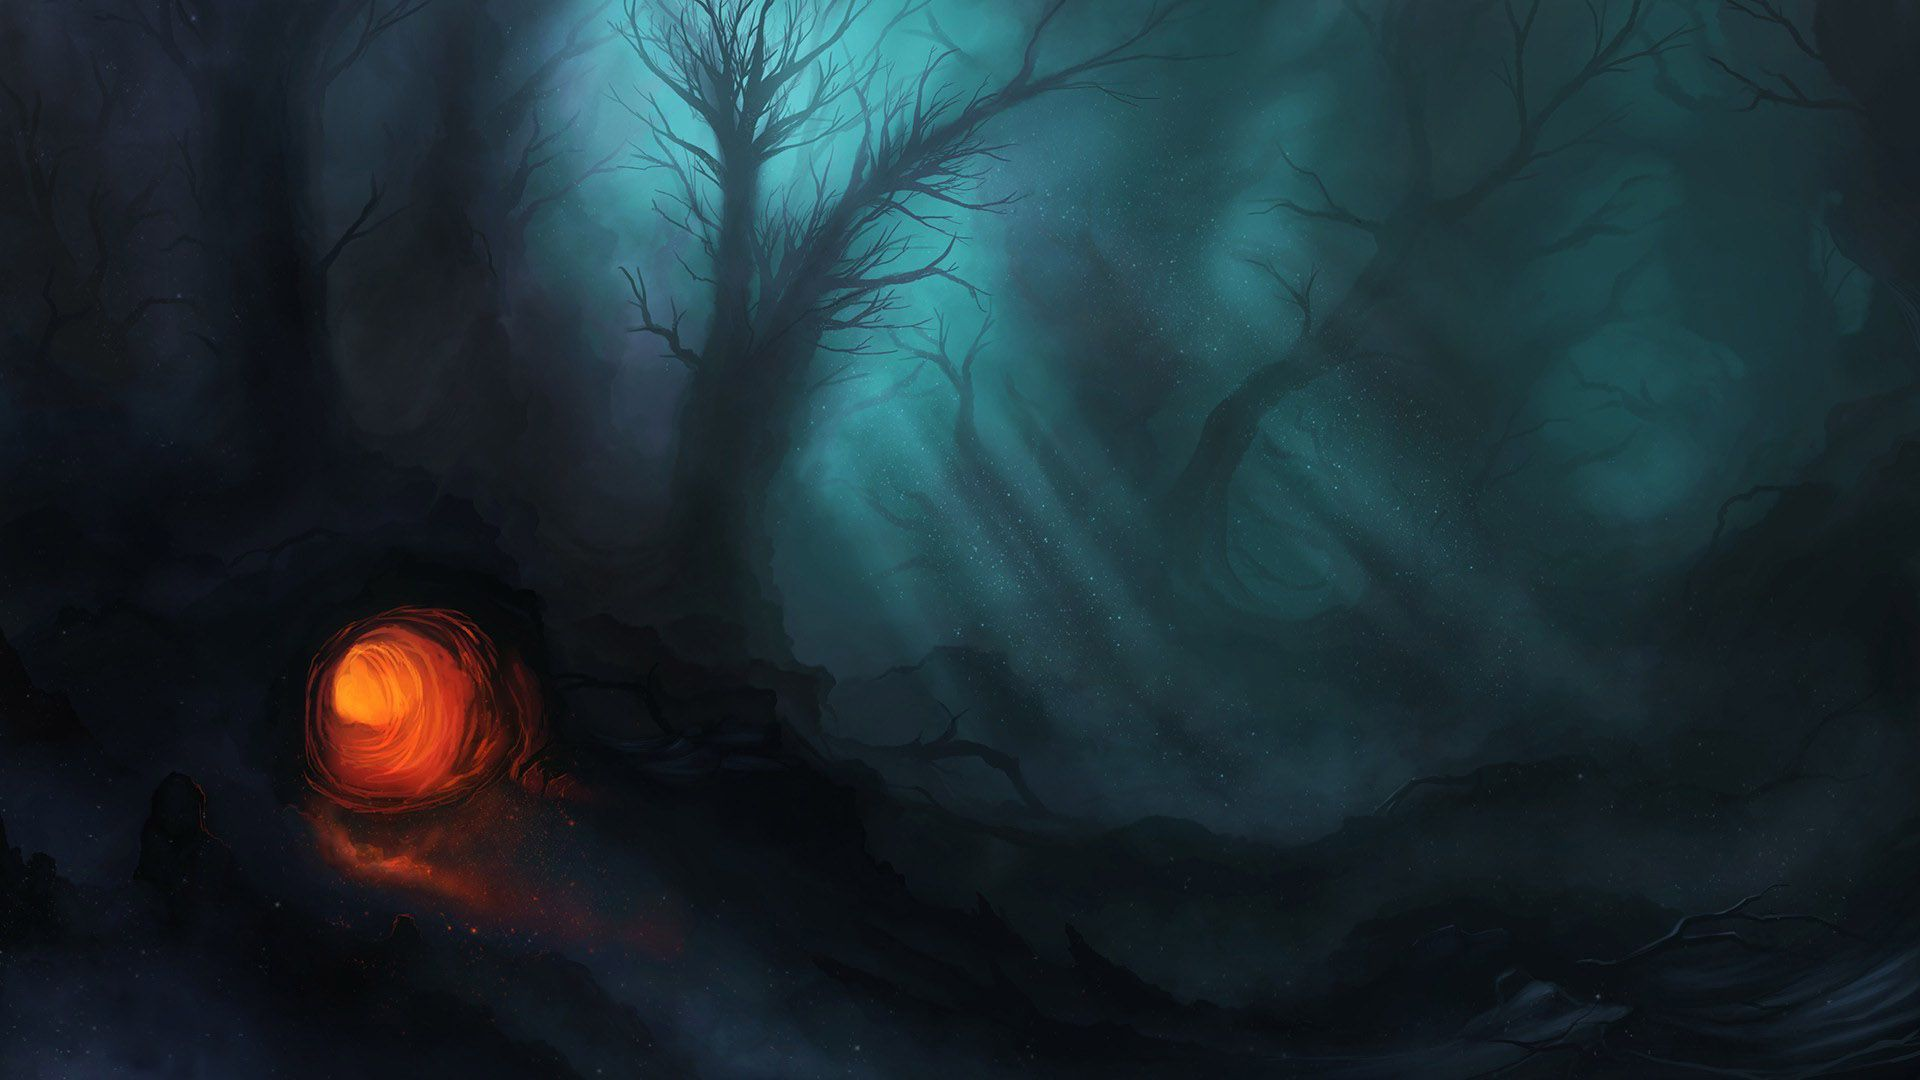 Drawn background cave Forest dark Forest the #